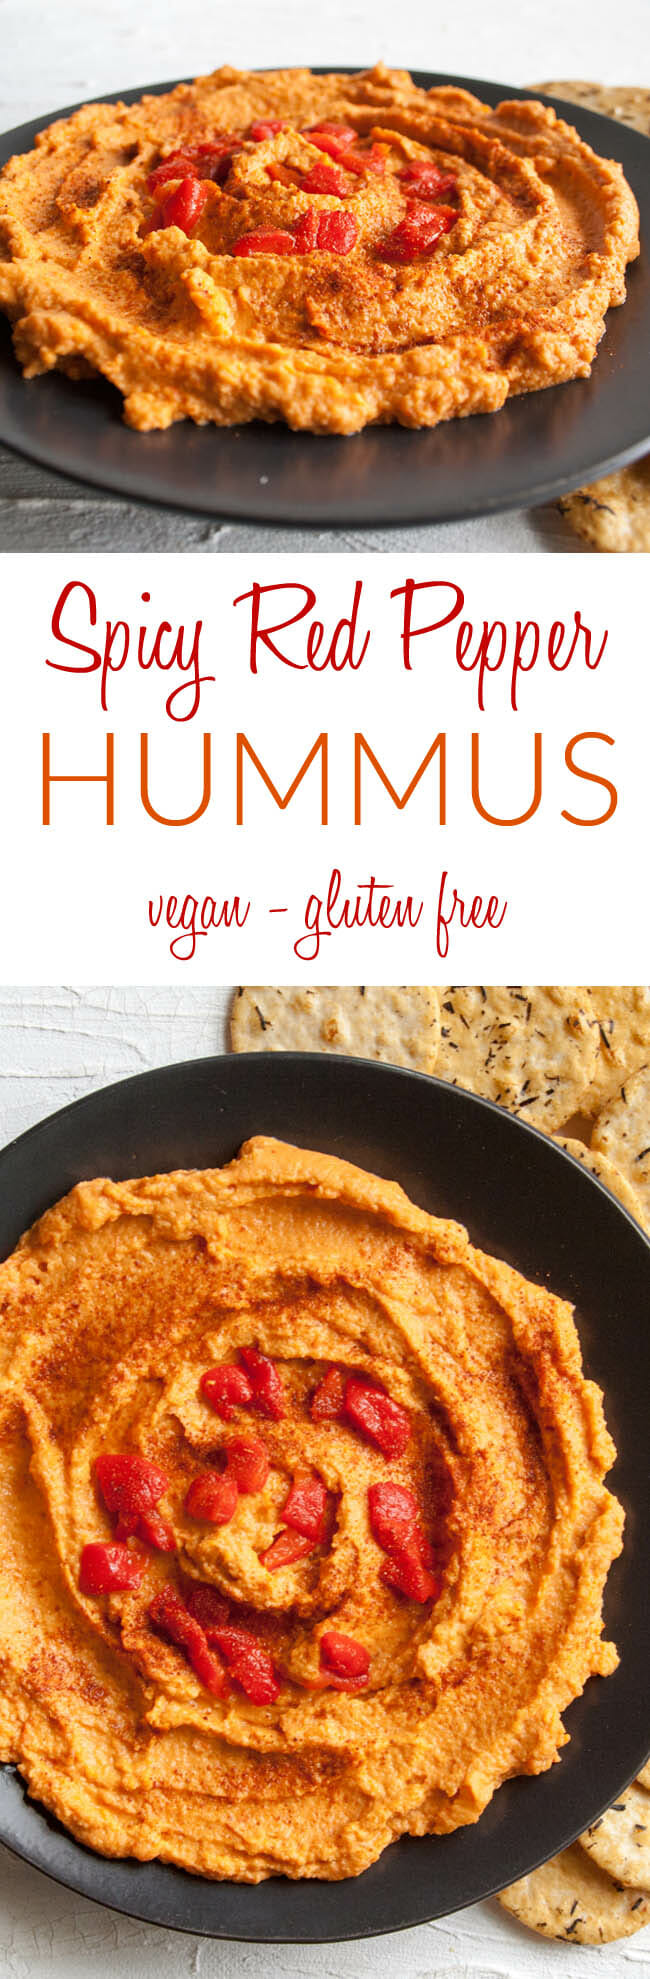 Spicy Red Pepper Hummus collage photo with text in the middle.